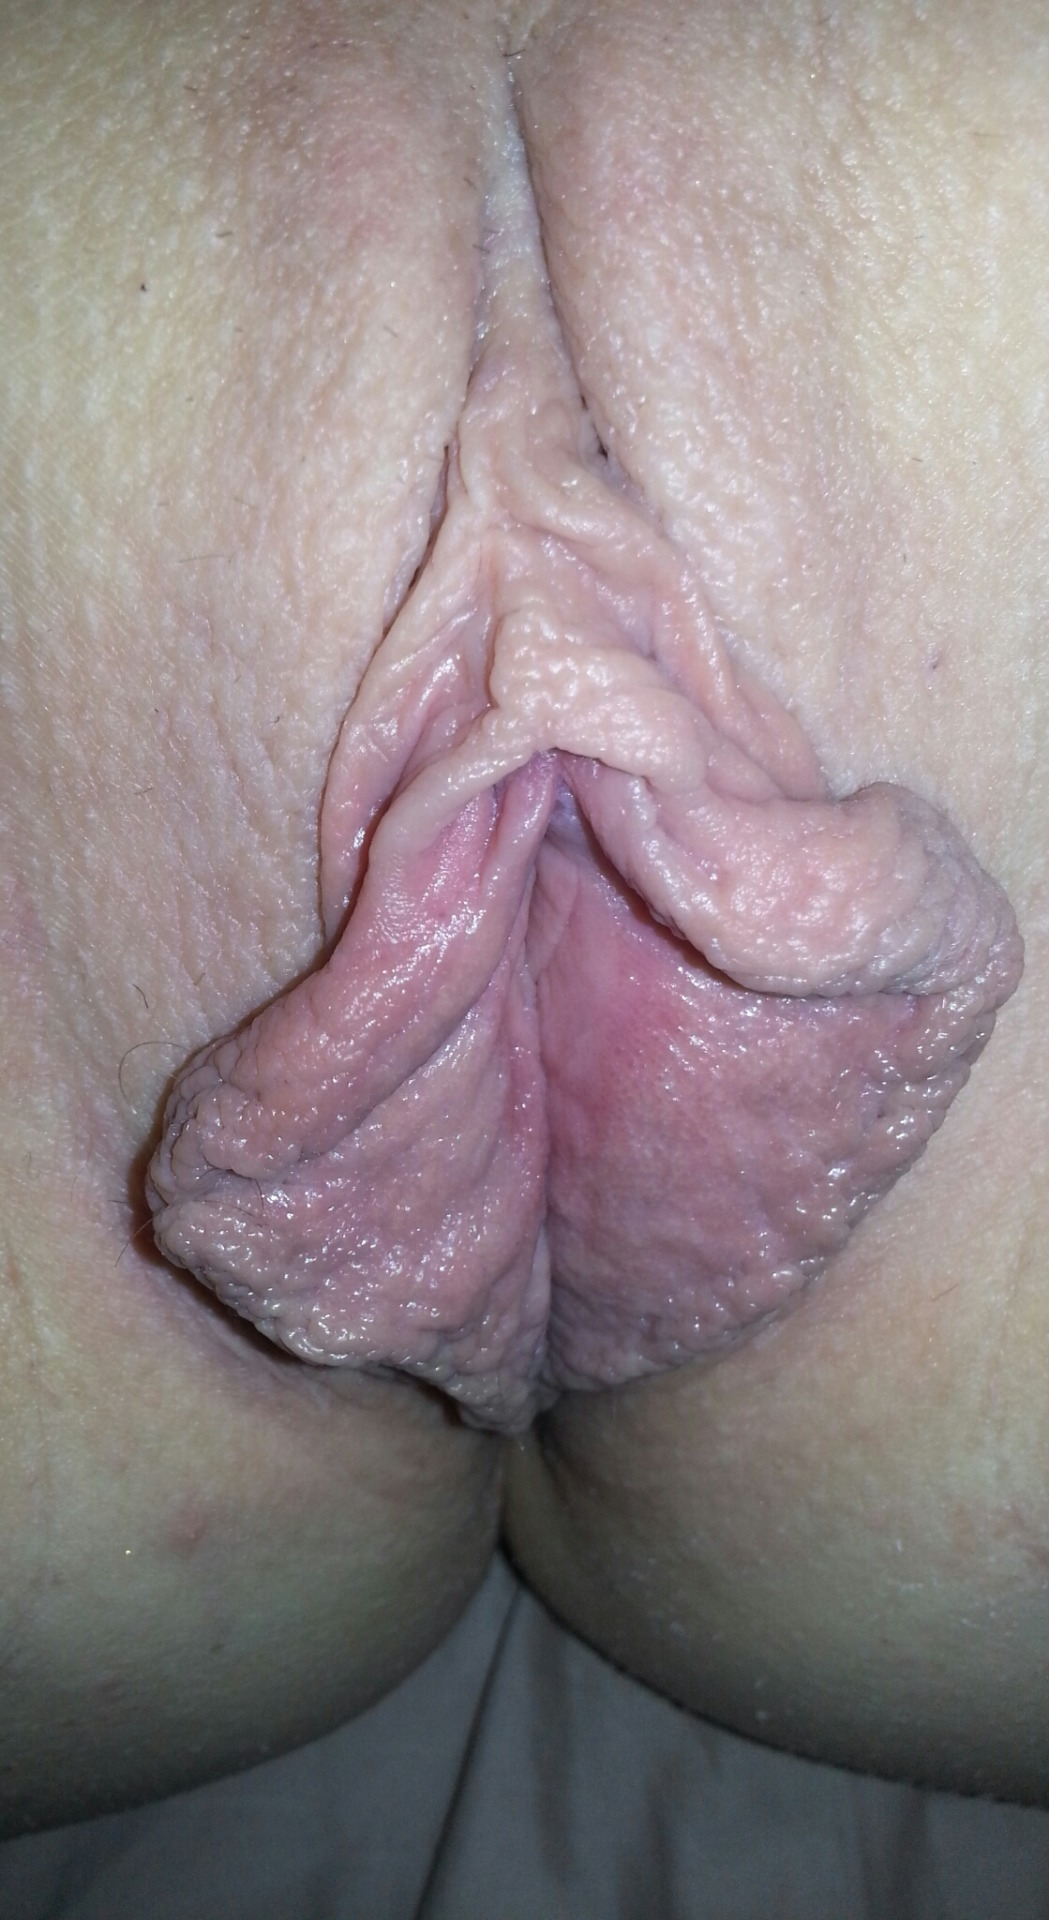 Meaty mexican pussy